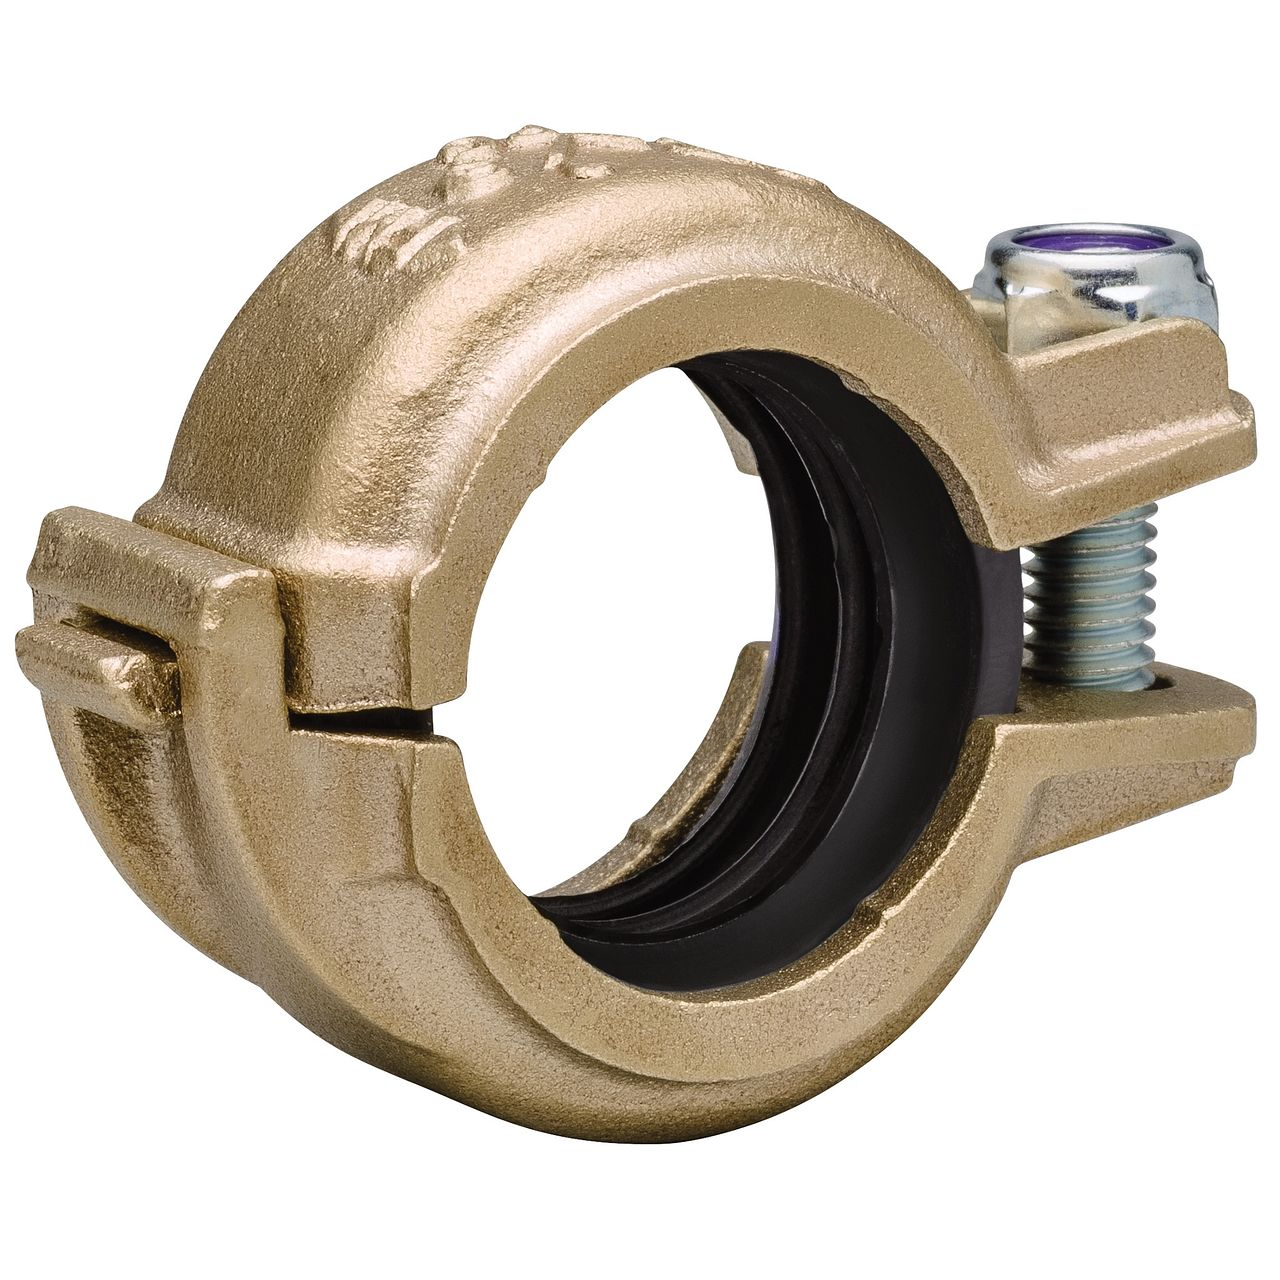 Style V9 FireLock™ IGS Installation-Ready Sprinkler Coupling